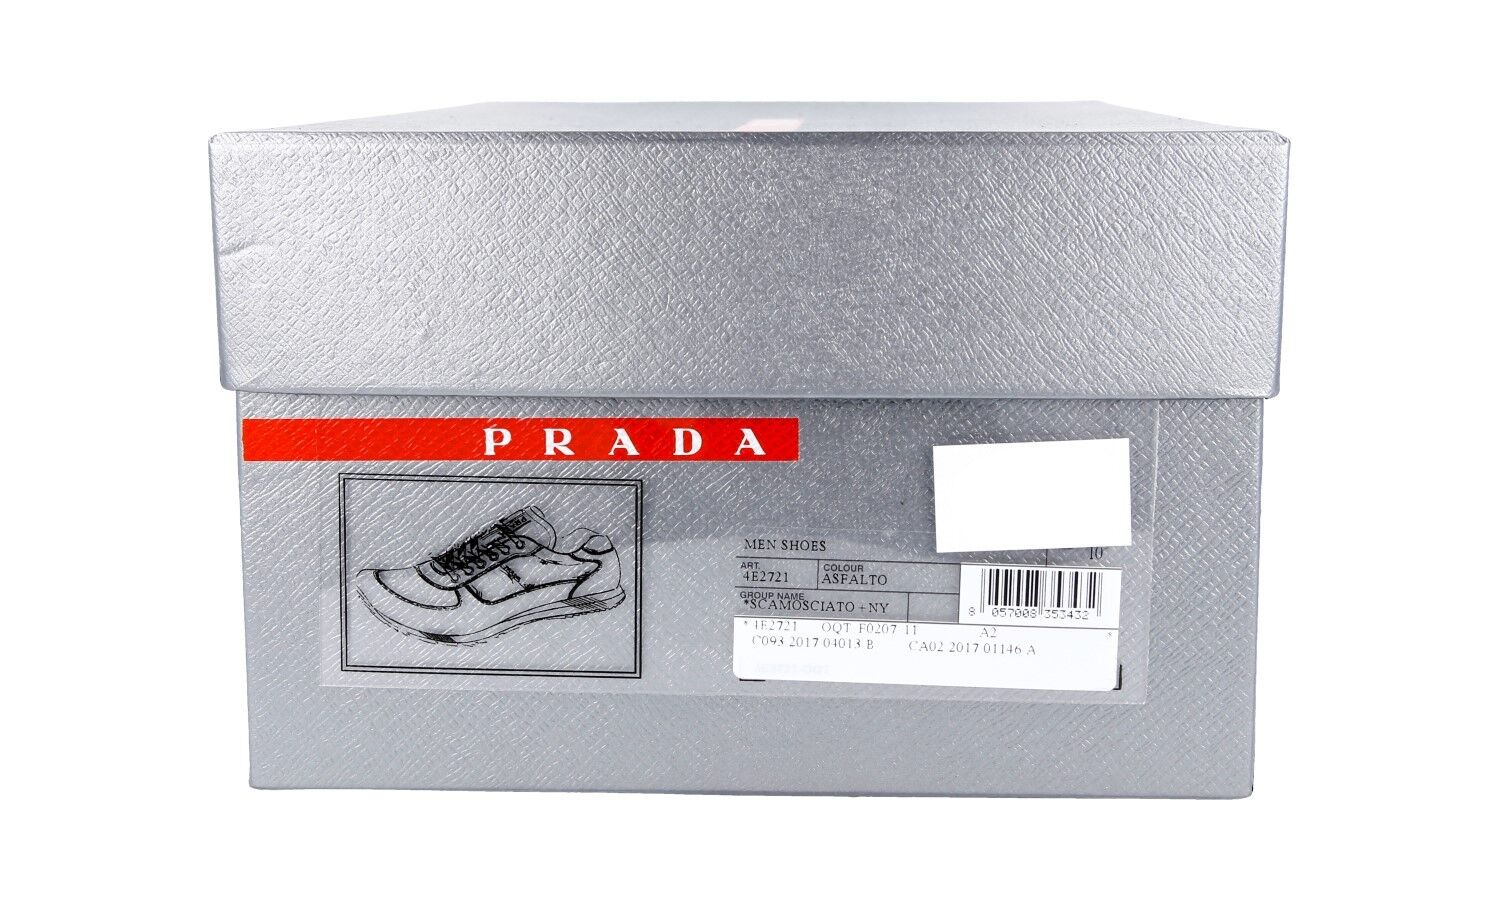 AUTHENTIC LUXURY 4E2721 PRADA SNEAKERS SHOES 4E2721 LUXURY ASFALTO NEW US 8 EU 41 41,5 9e0799